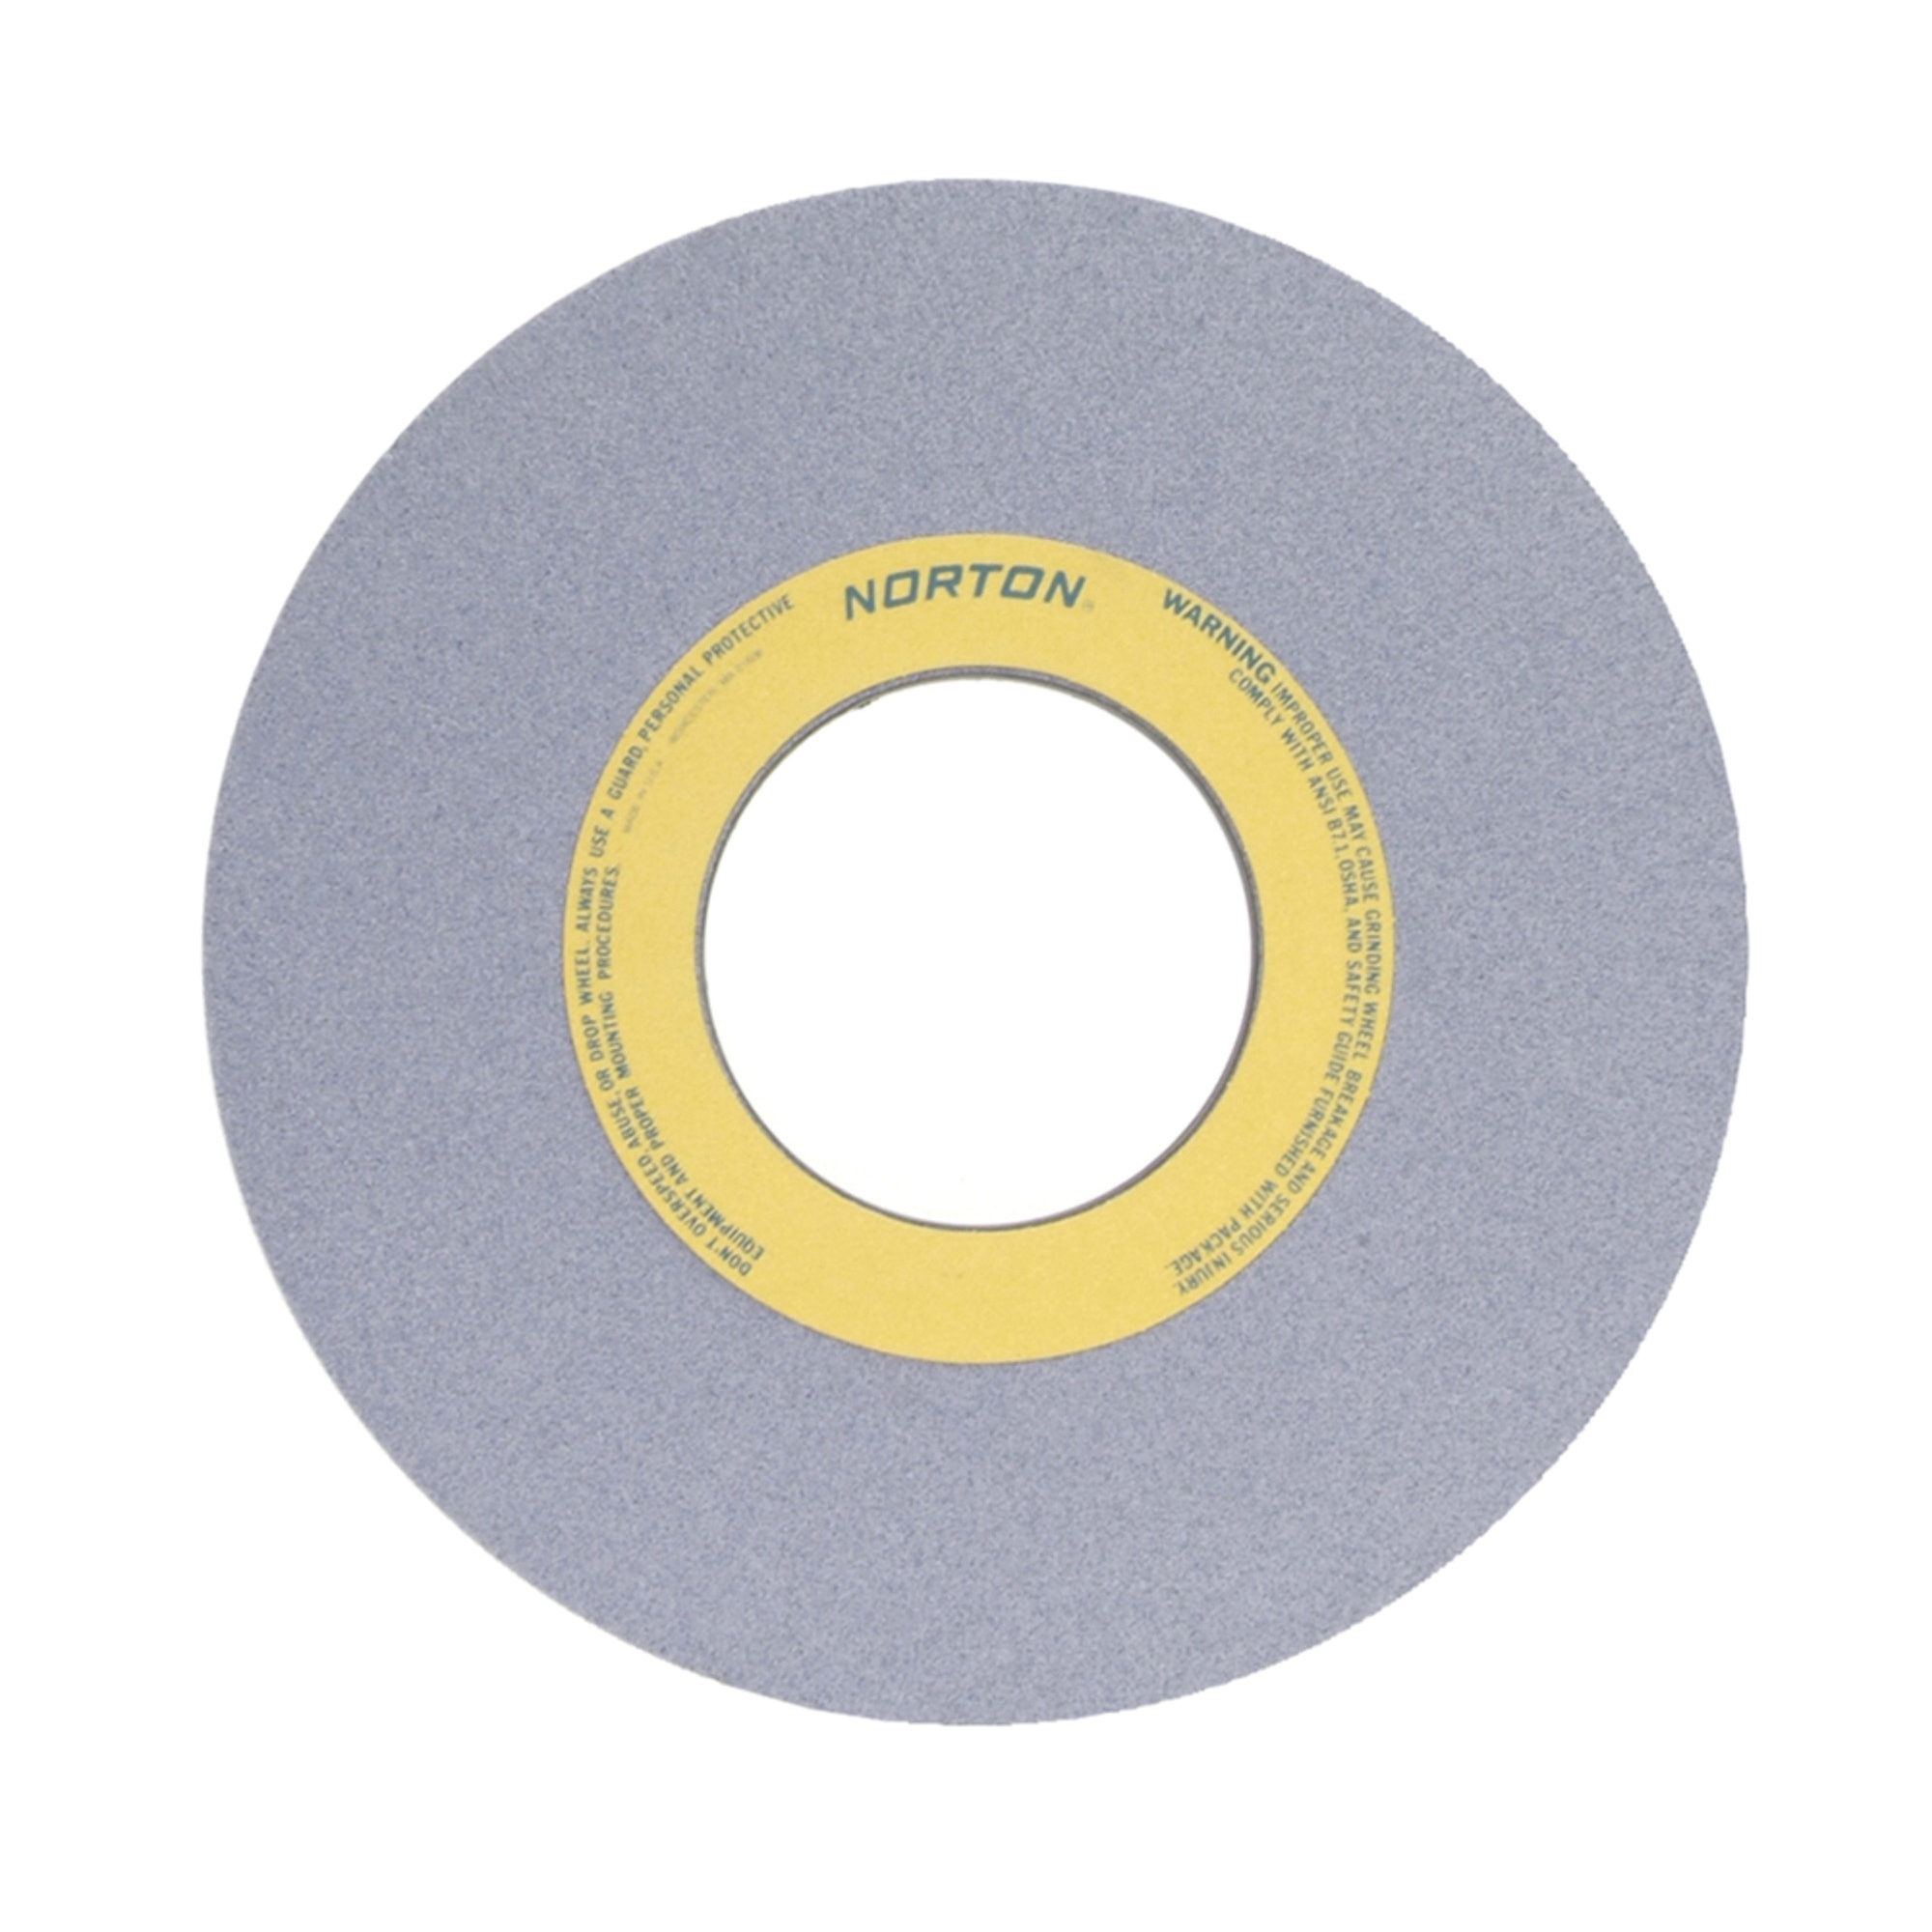 Norton® 66253364039 32A Straight Toolroom Wheel, 14 in Dia x 1 in THK, 5 in Center Hole, 80 Grit, Aluminum Oxide Abrasive